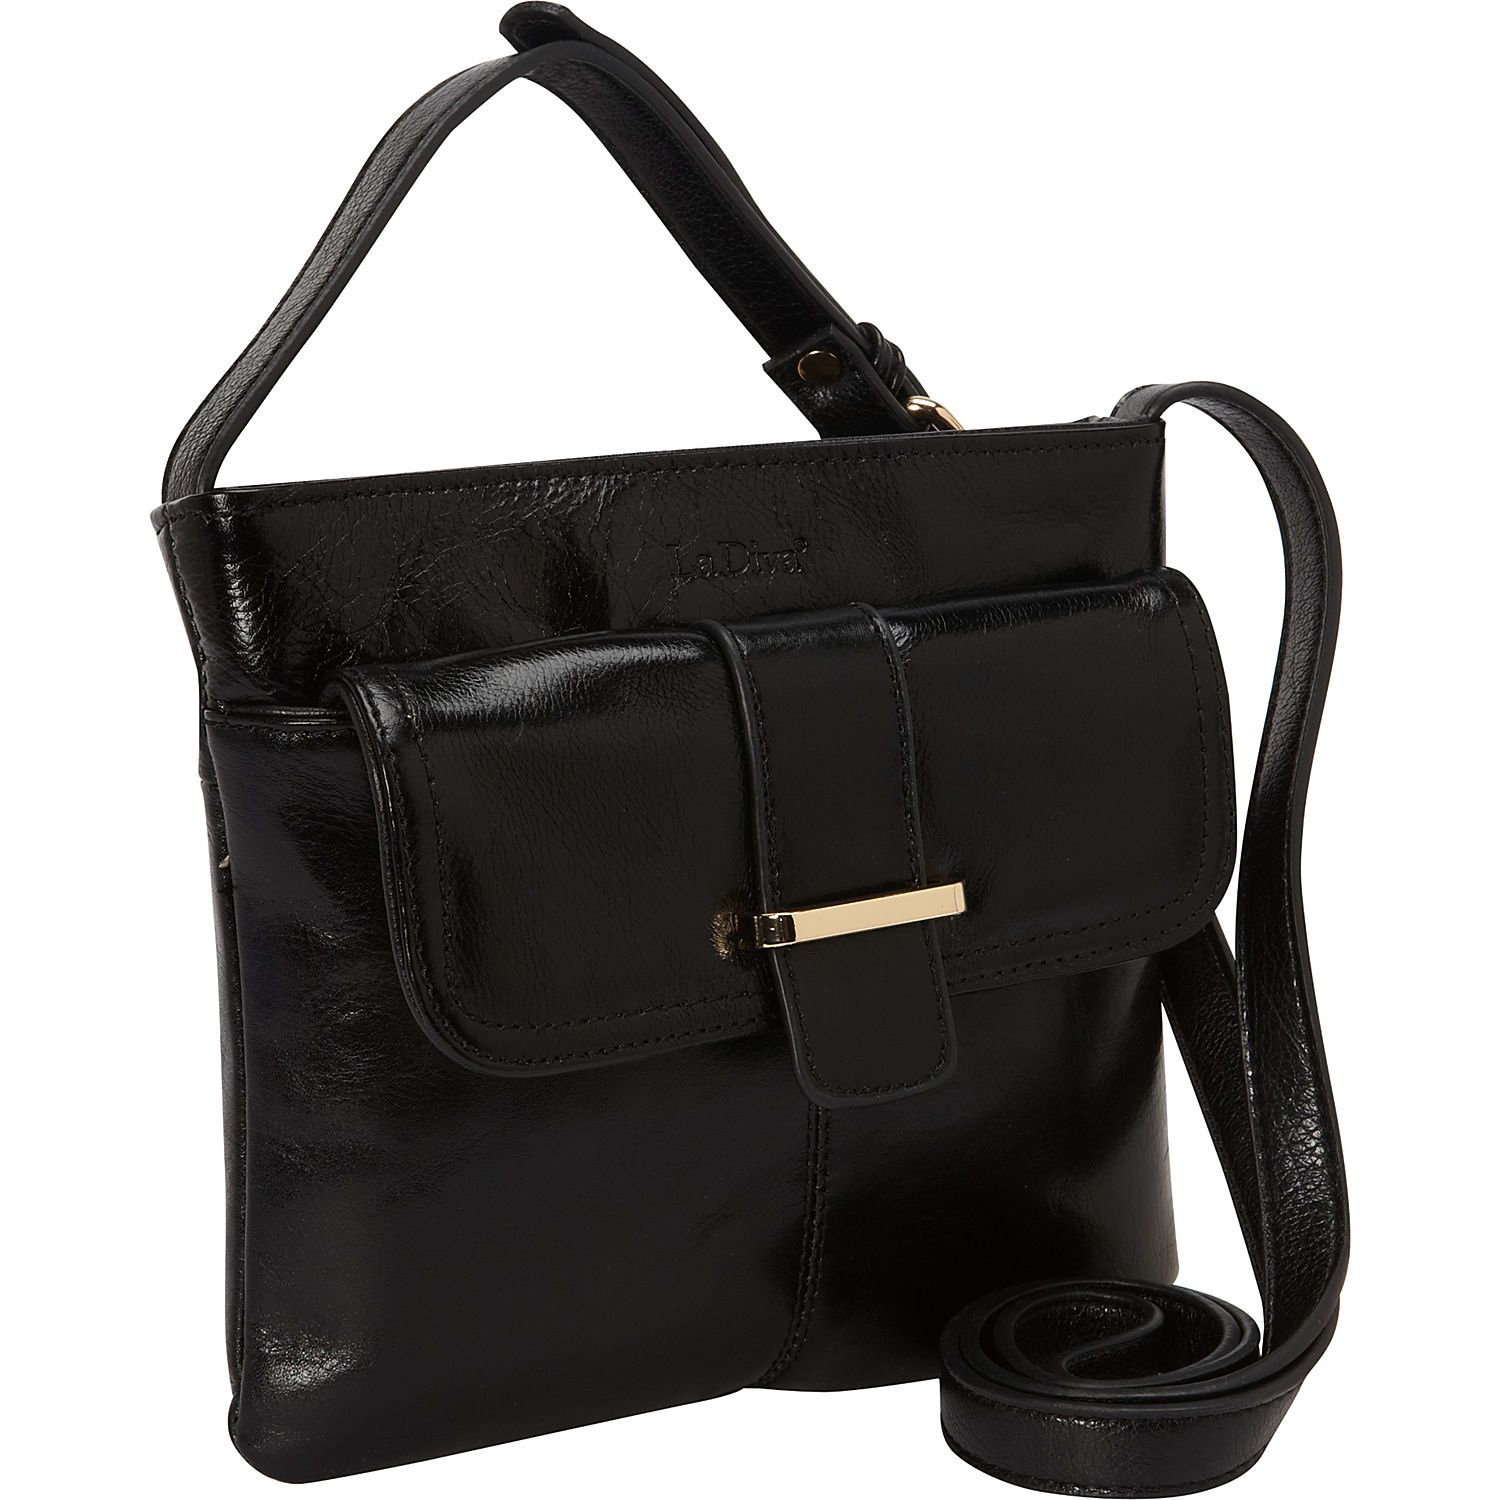 904a2f7108 La Diva Leather Small Cross-Body Bag with Front Buckle in BLACK  handbag   leather